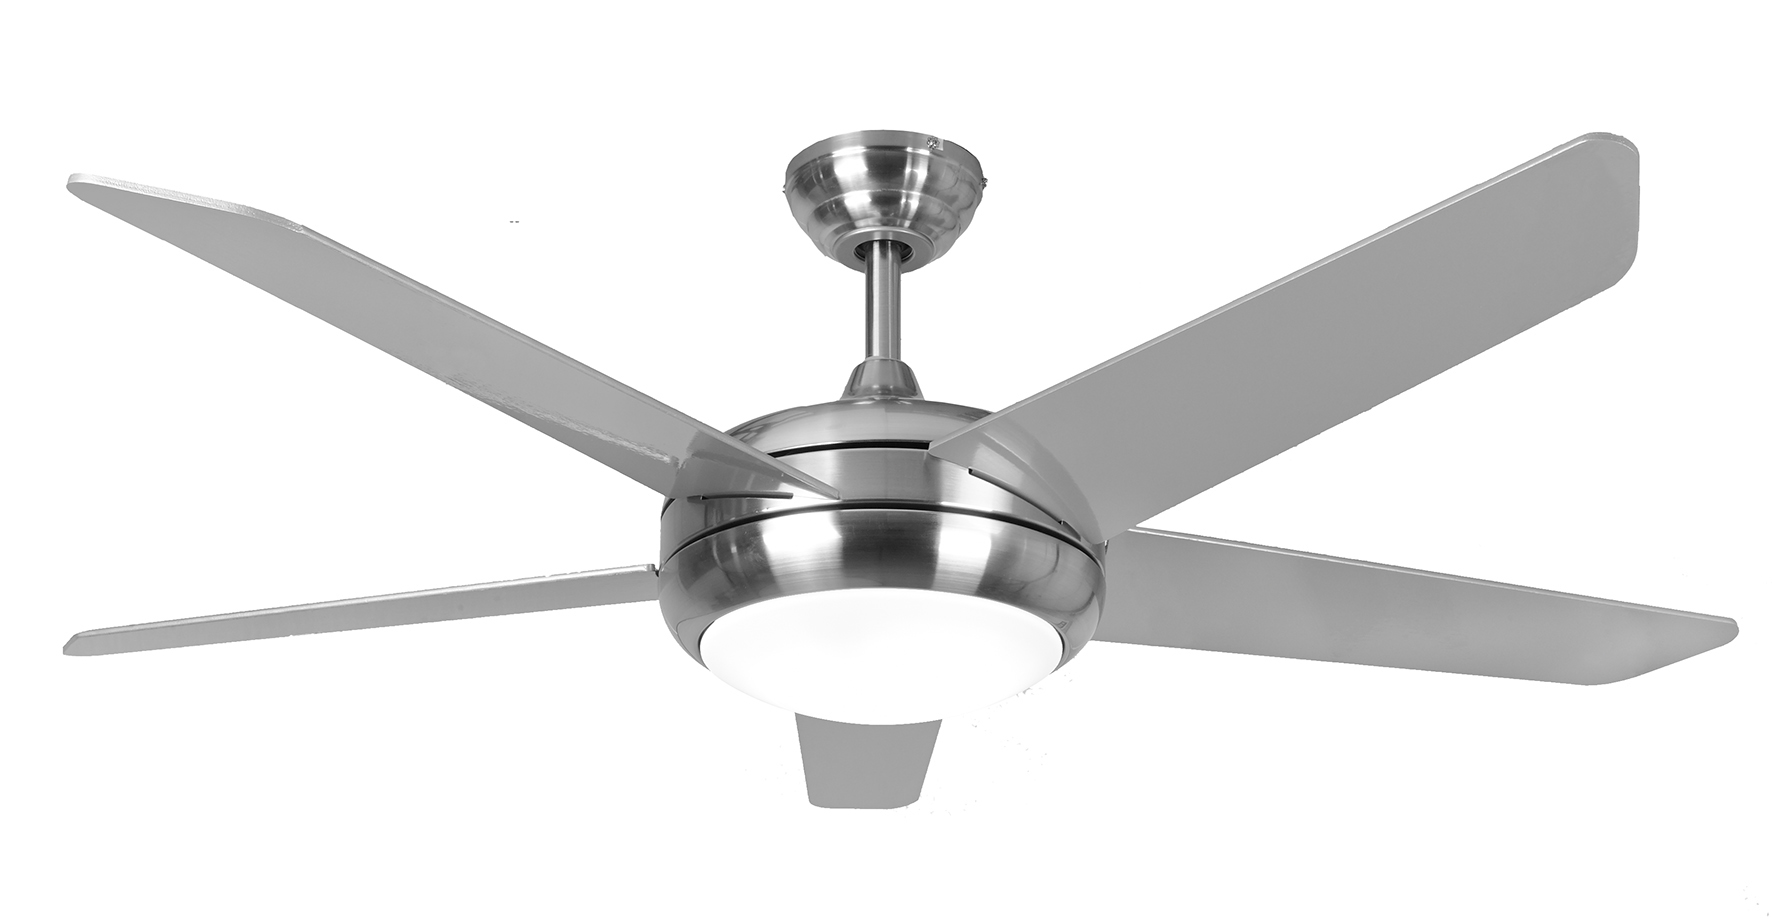 Eurofans Neptune 44 Quot Brushed Nickel Ceiling Fan Remote